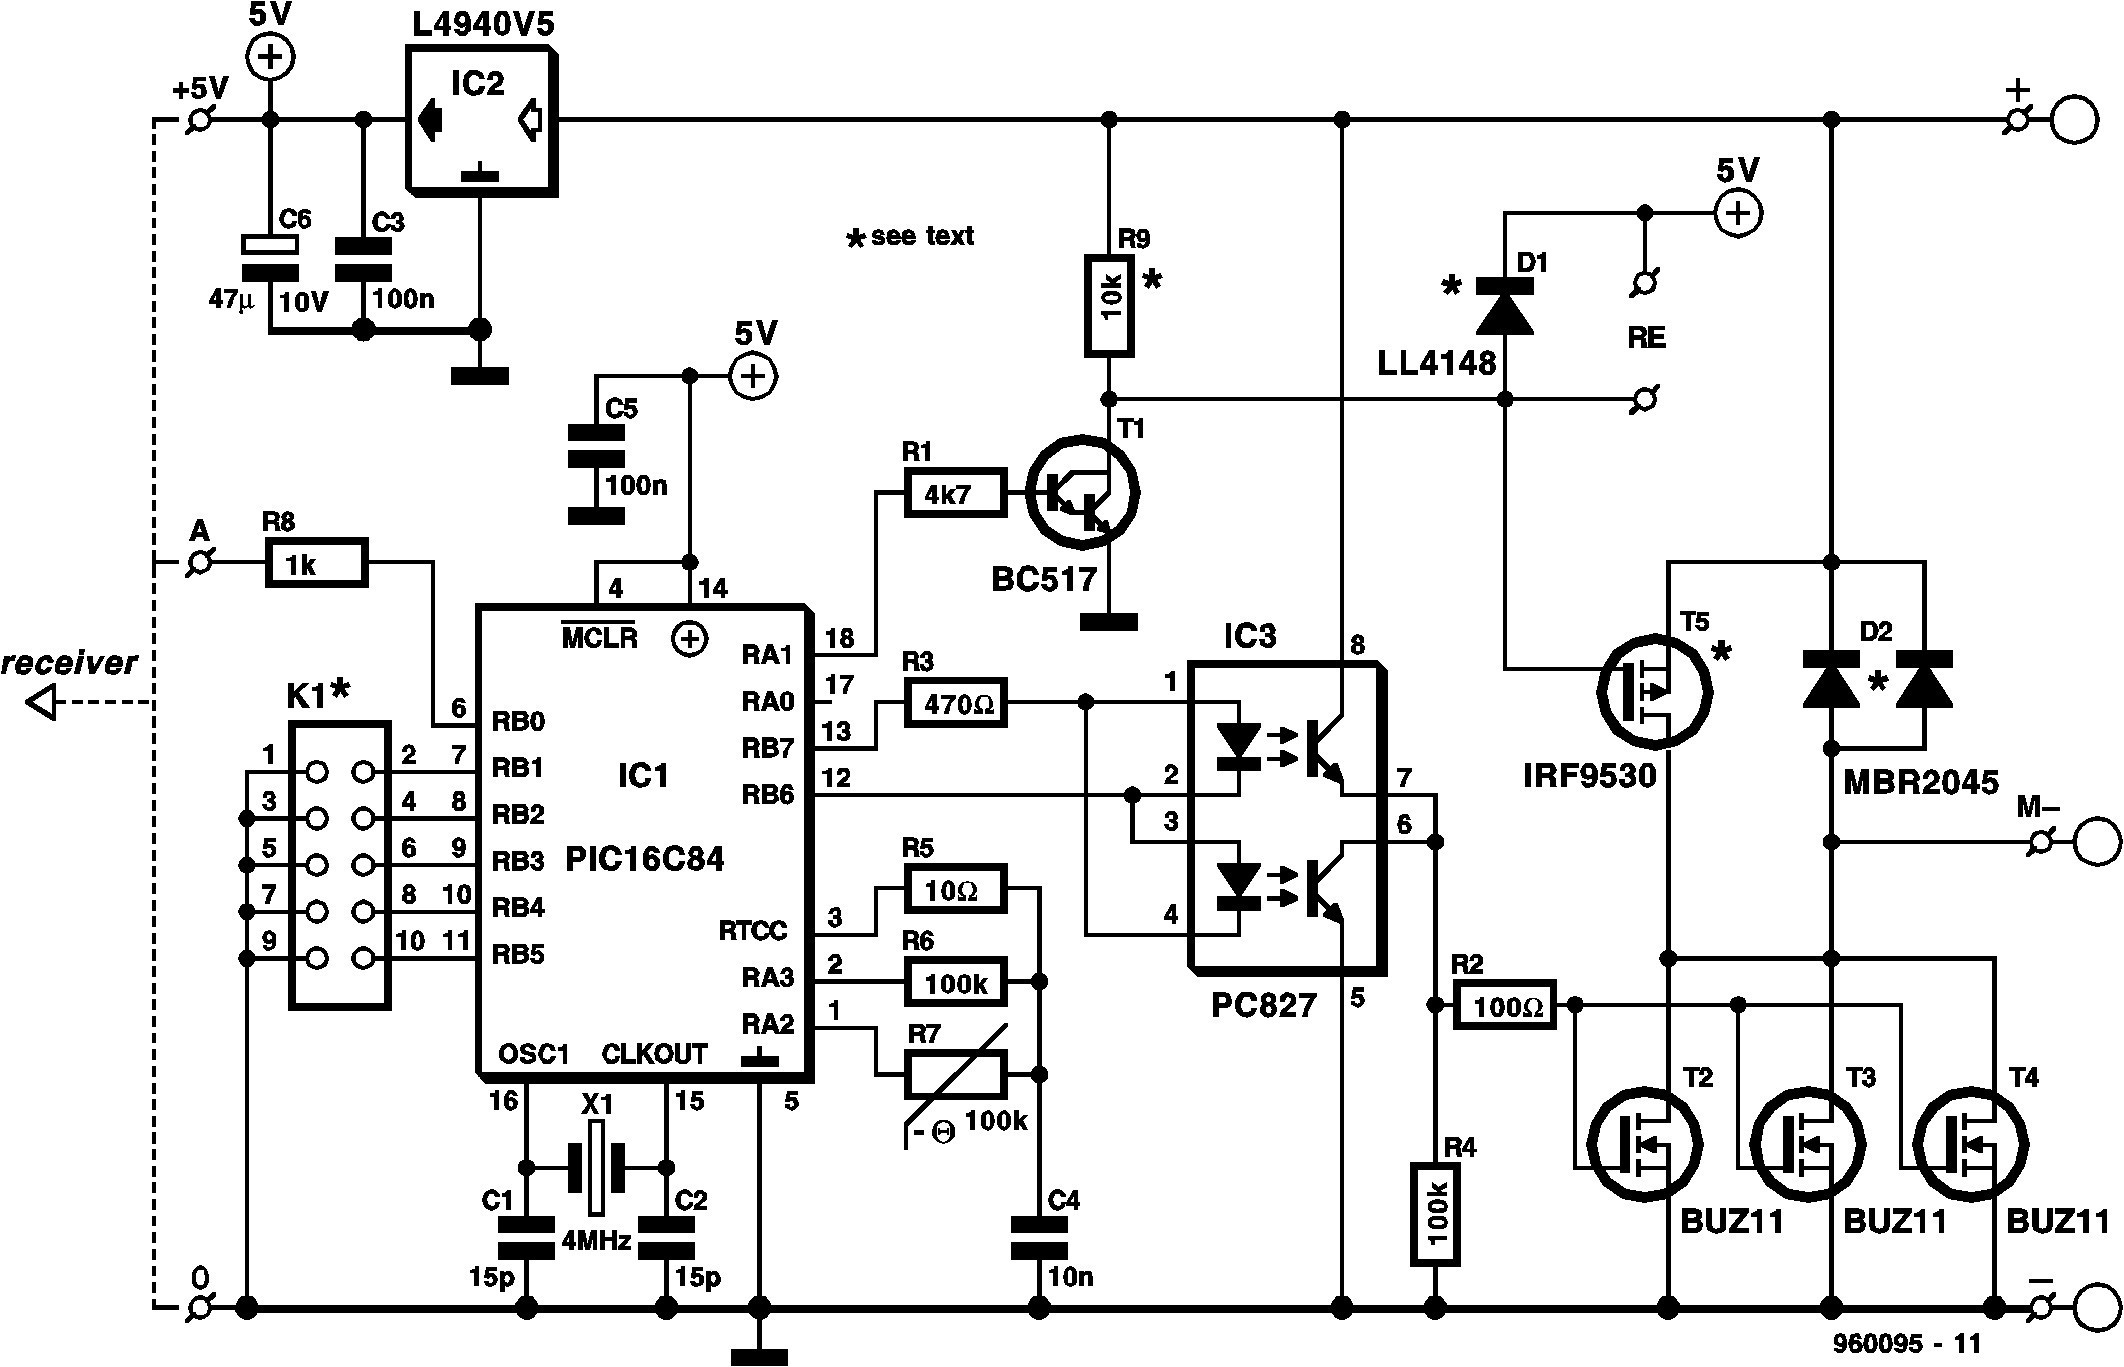 toy car remote control circuit diagram my wiring diagram 6v toy car wiring diagram electric toy car wiring diagram